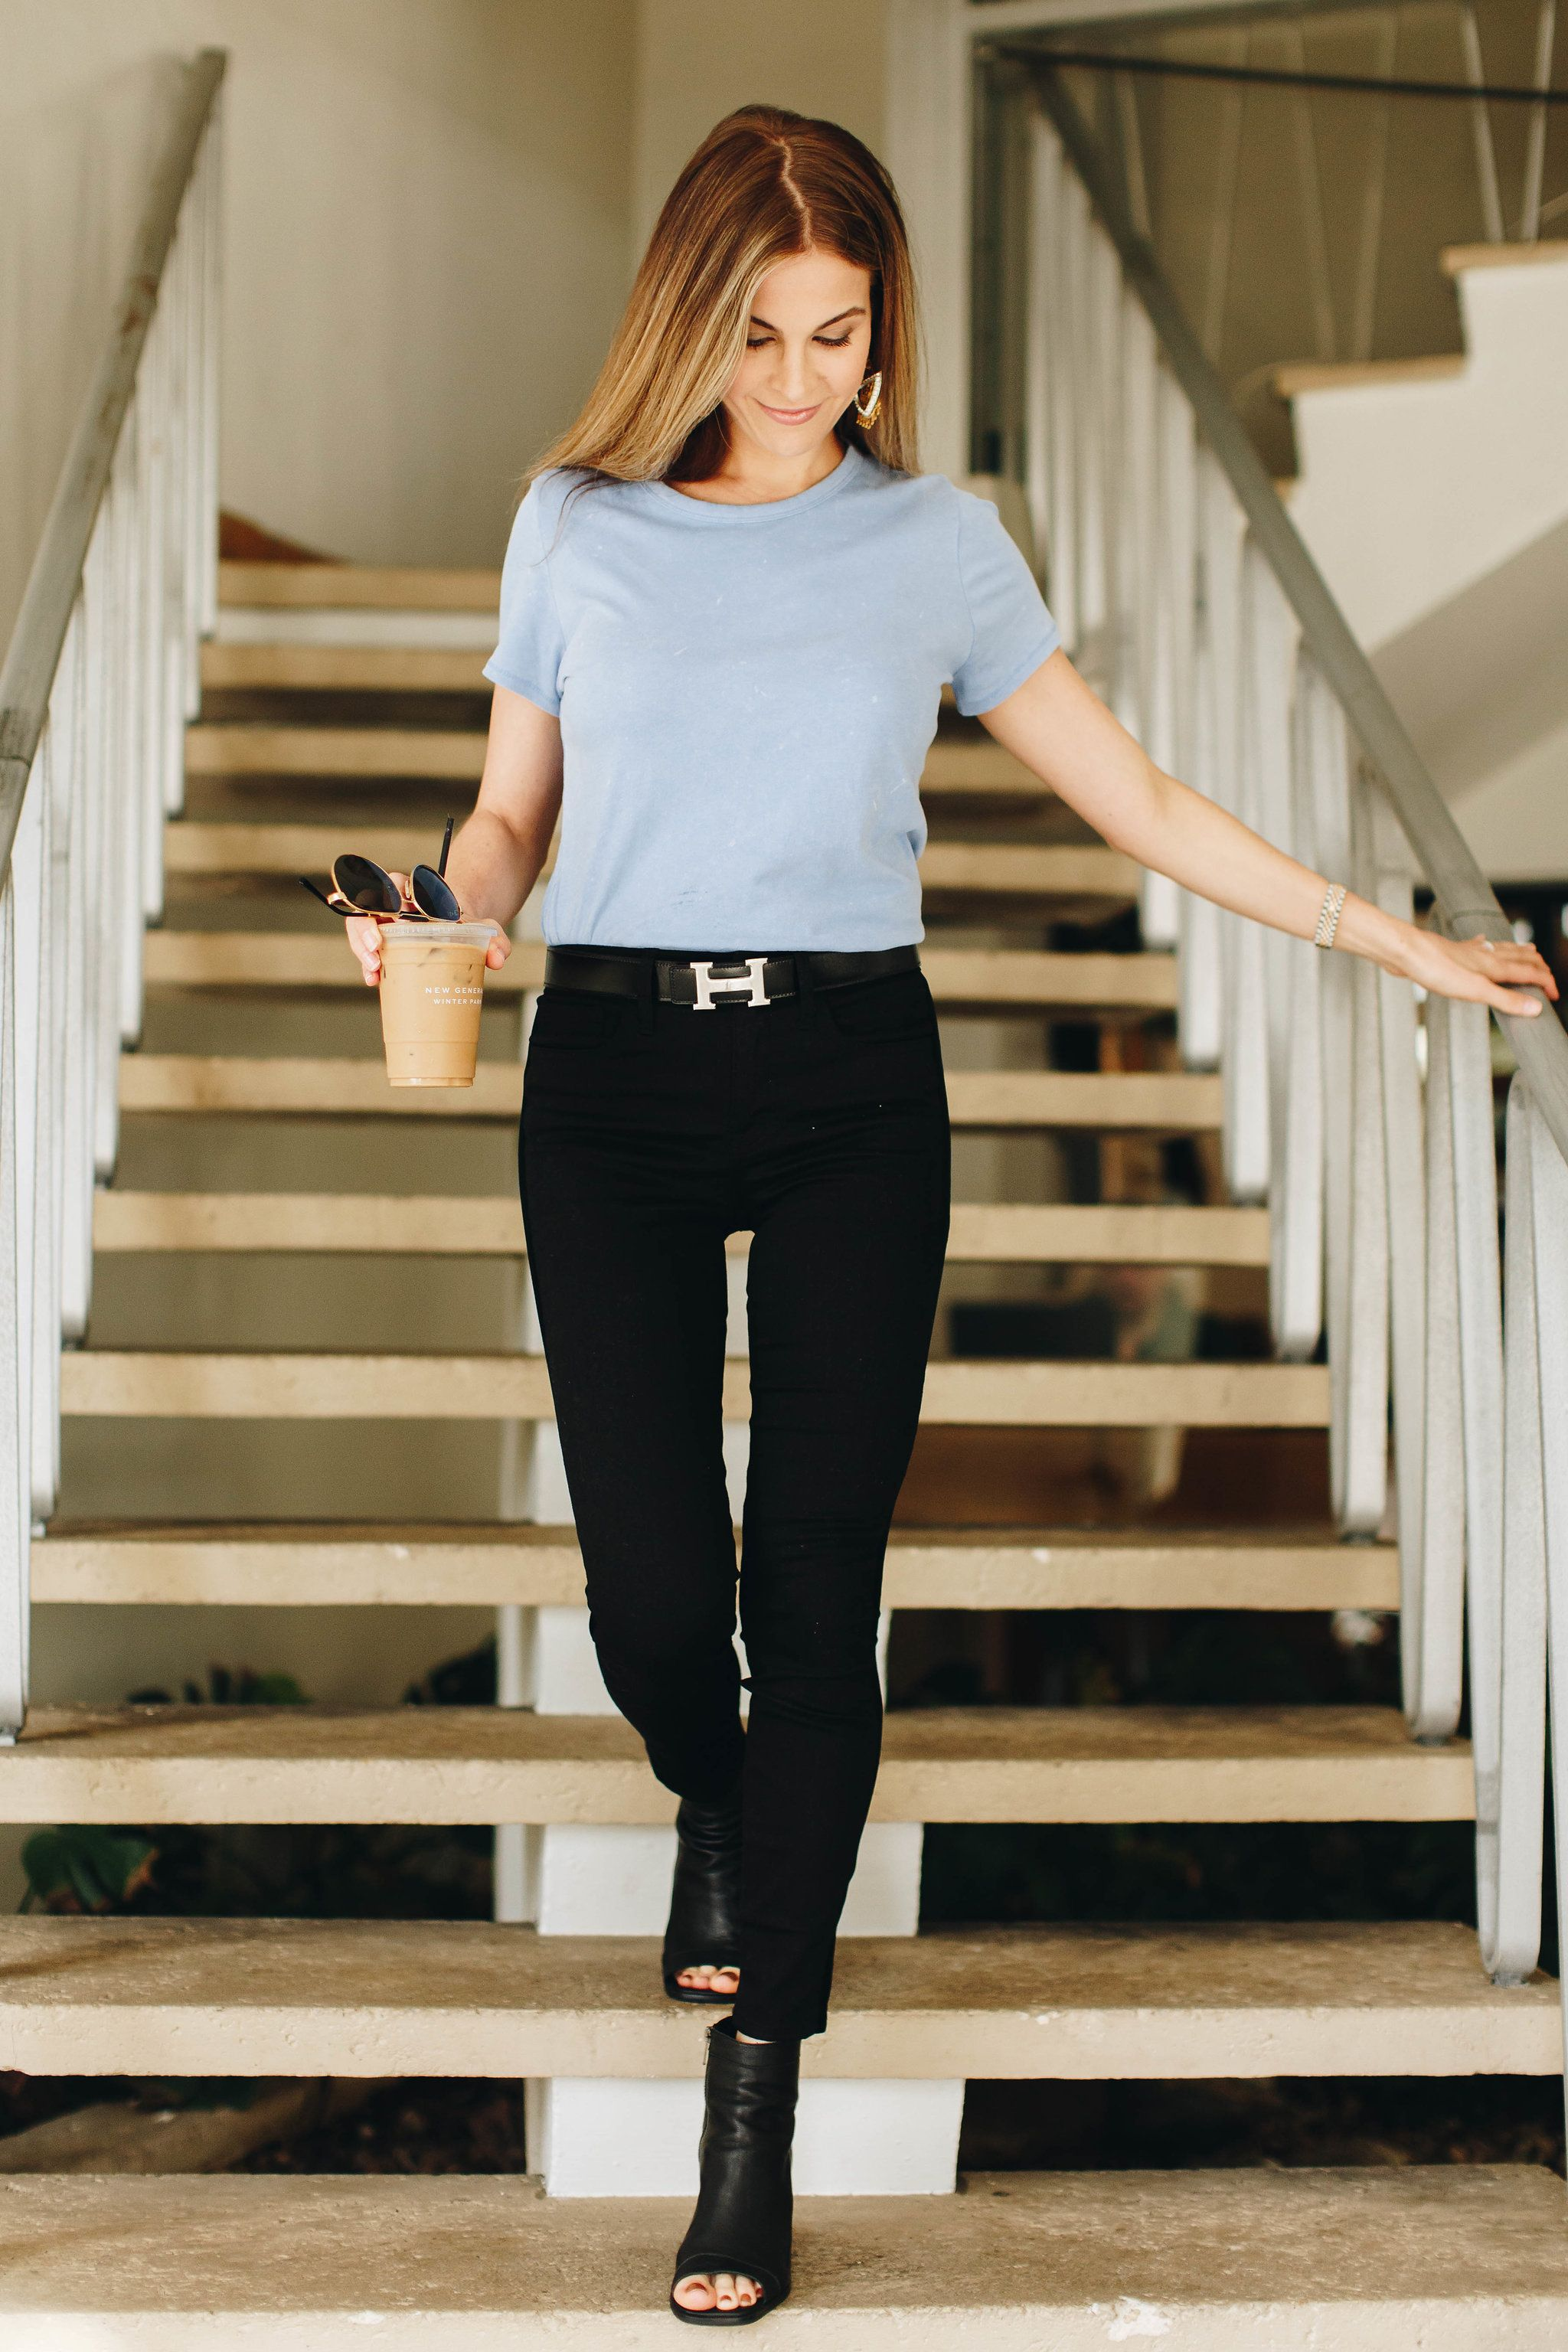 The Perfect Black Pants to Dress Up or Down